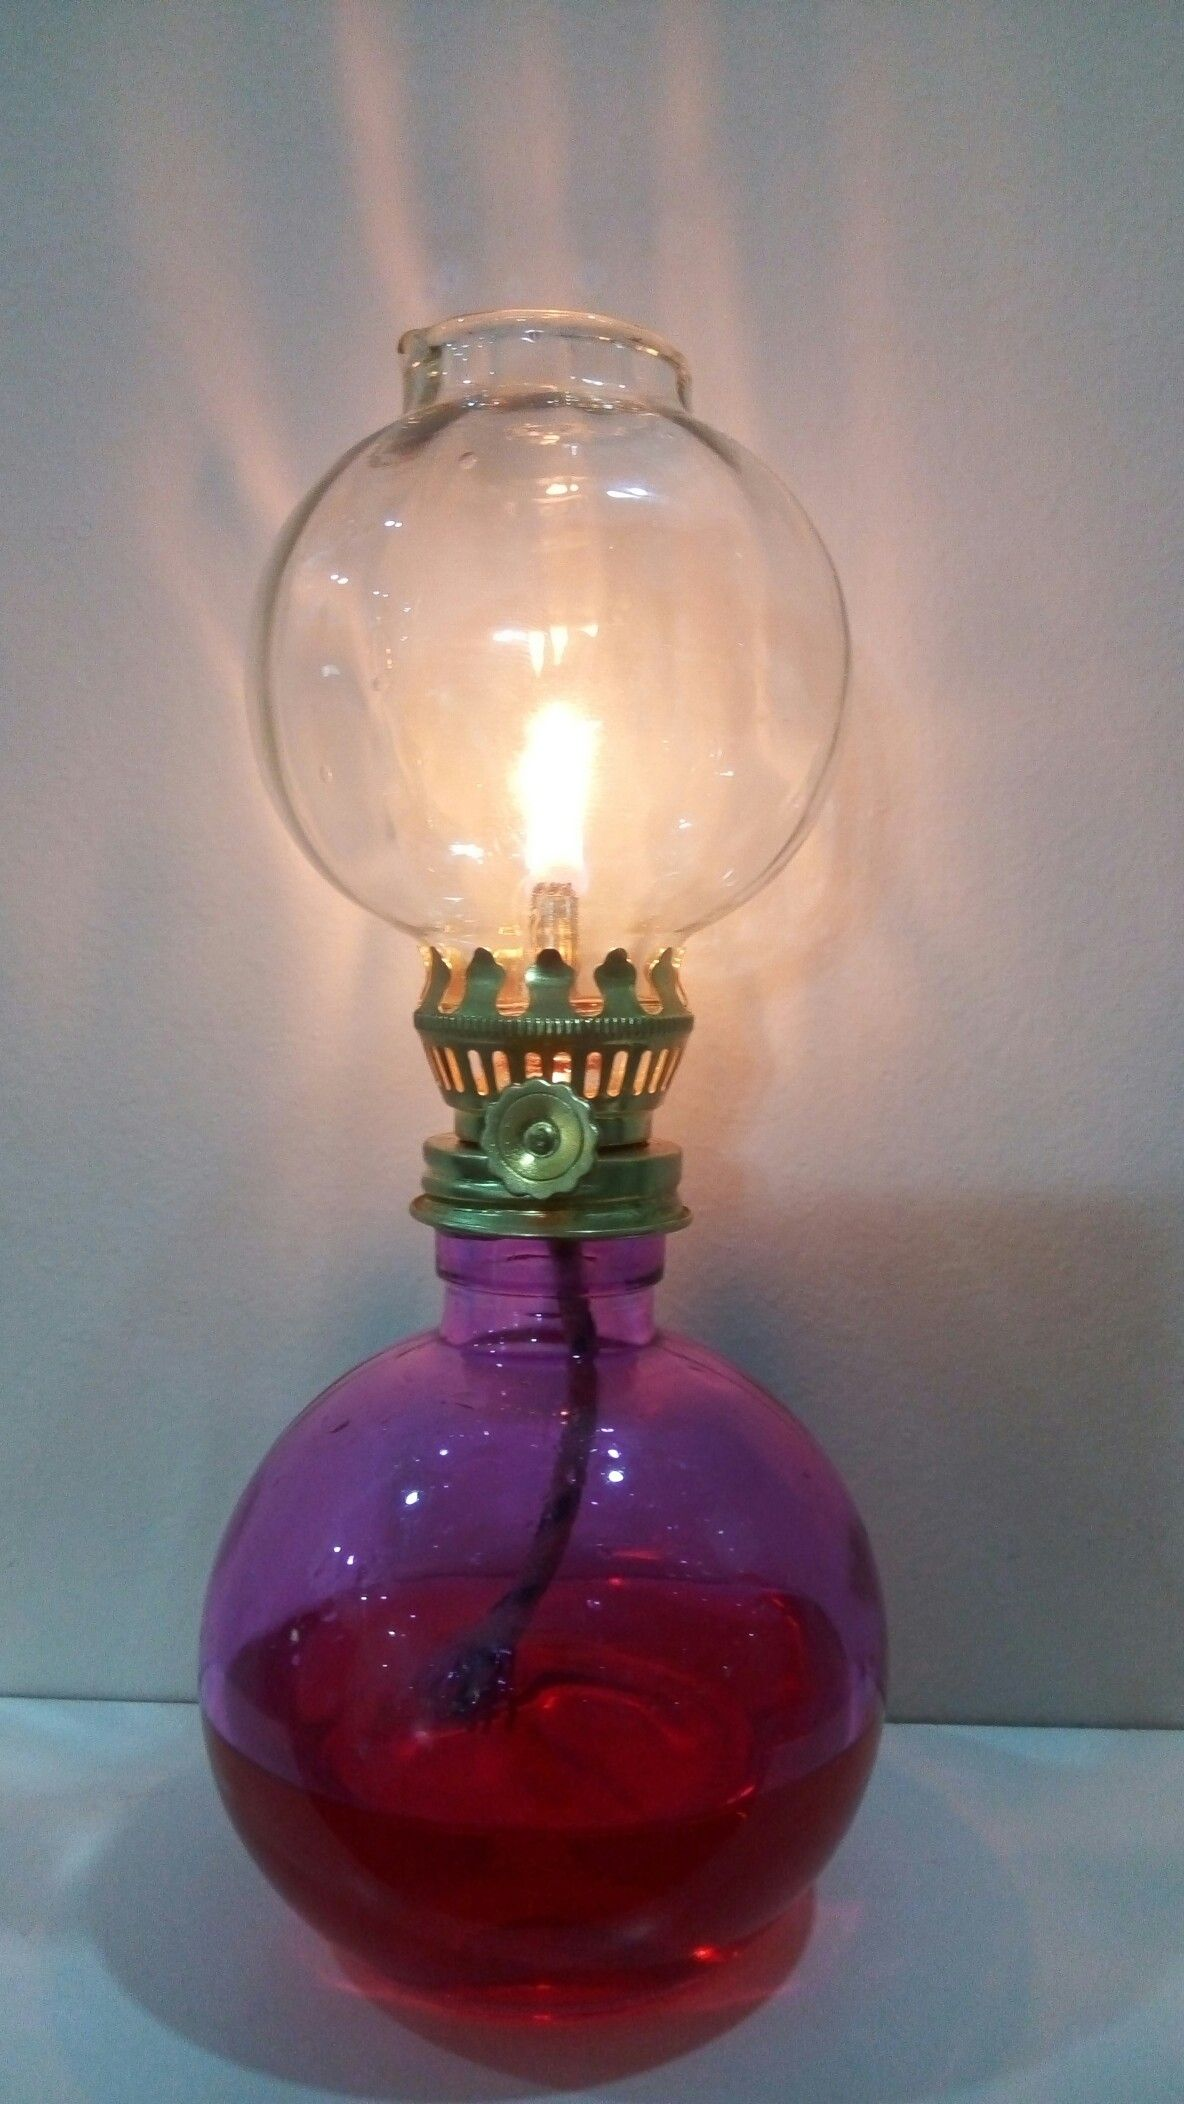 Diy Kerosene Lamp Kerosene Oil Lamp Diy Kerosene Lamp Lantern Pinterest Oil